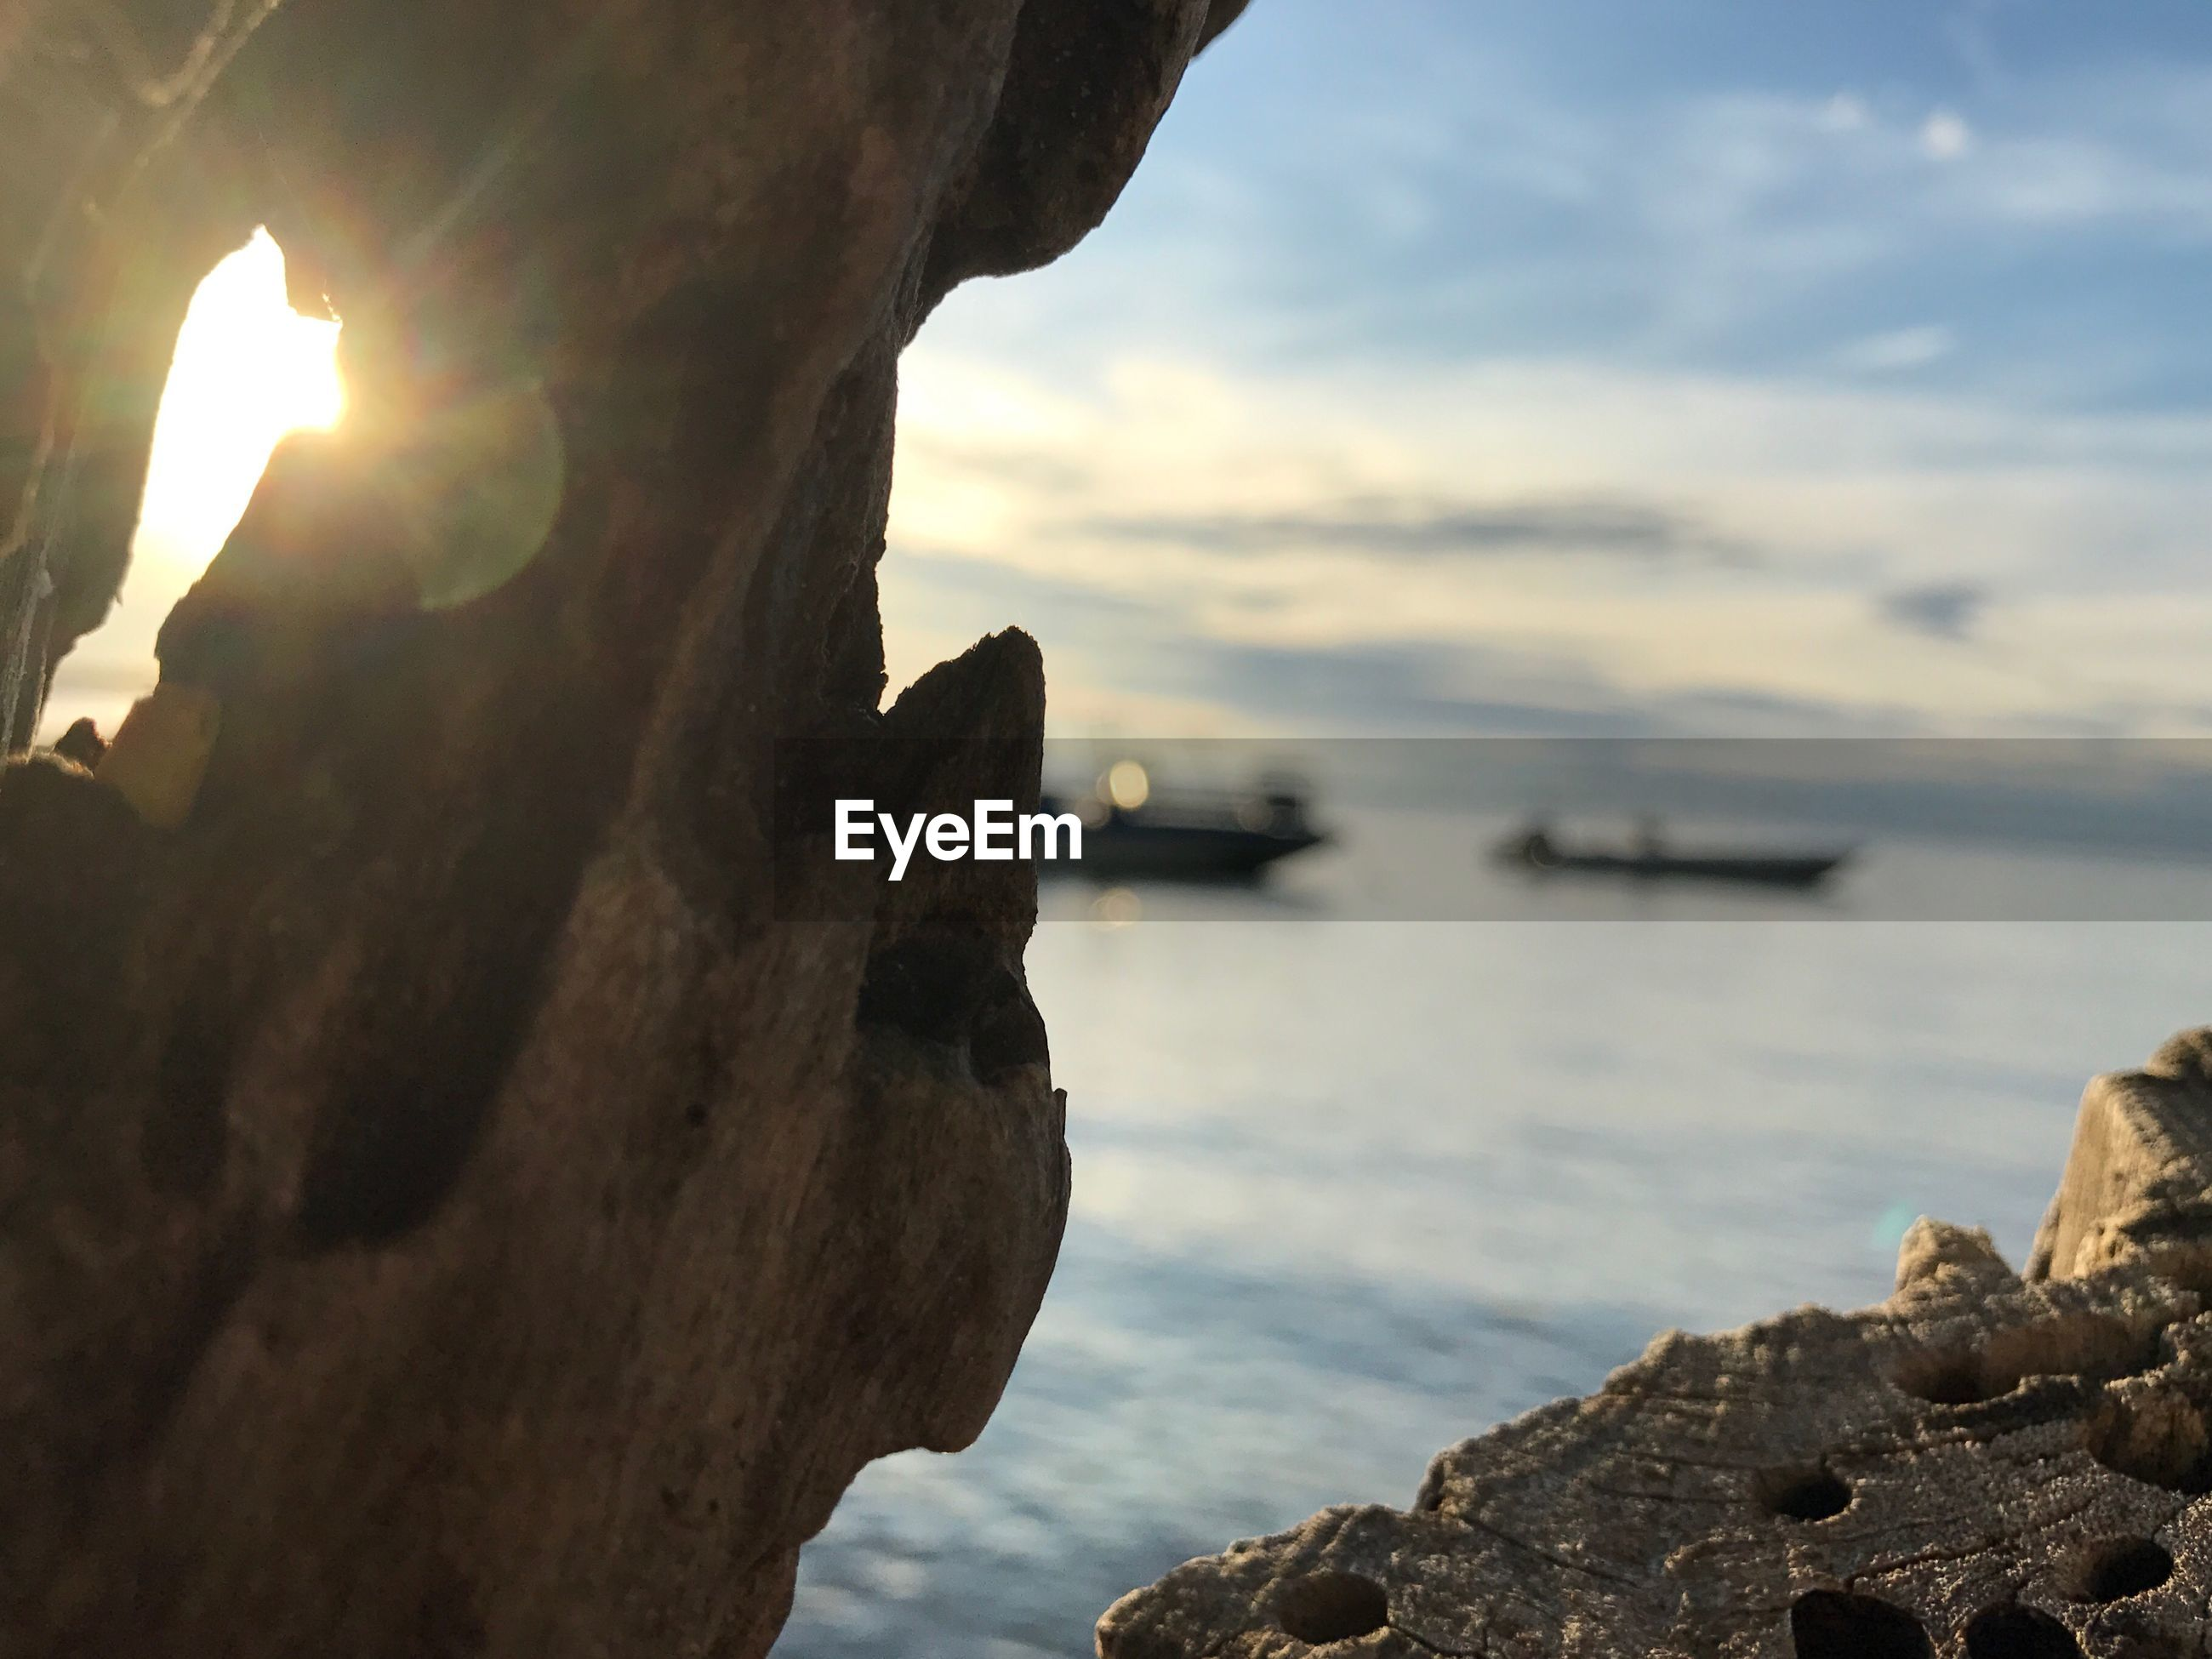 SCENIC VIEW OF ROCKS AT SEA AGAINST SKY